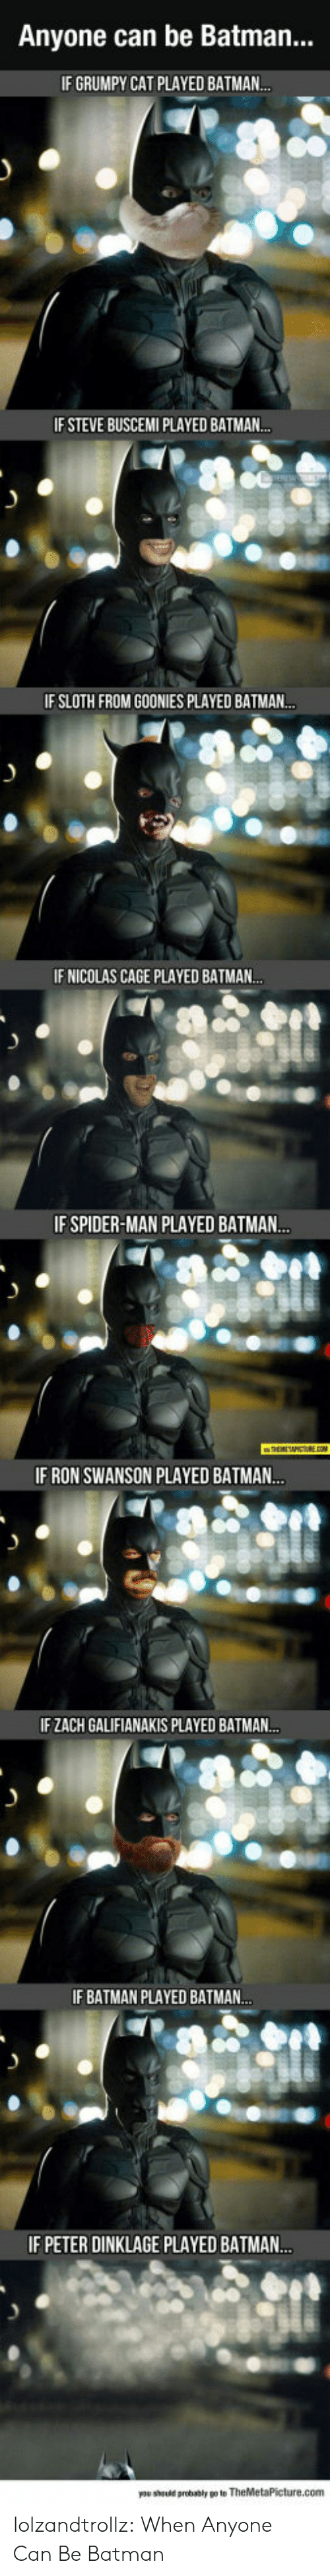 Be Batman: Anyone can be Batman...  IF GRUMPY CAT PLAYED BATMAN..  IF STEVE BUSCEMI PLAYED BATMAN..  IF SLOTH FROM GOONIES PLAYED BATMAN..  IF NICOLAS CAGE PLAYED BATMAN..  IF SPIDER-MAN PLAYED BATMAN...  IF RON SWANSON PLAYED BATMAN..  IF ZACH GALIFIANAKIS PLAYED BATMAN..  IF BATMAN PLAYED BATMAN.  IF PETER DINKLAGE PLAYED BATMA..  you should probably po to TheMetaPicture.com lolzandtrollz:  When Anyone Can Be Batman